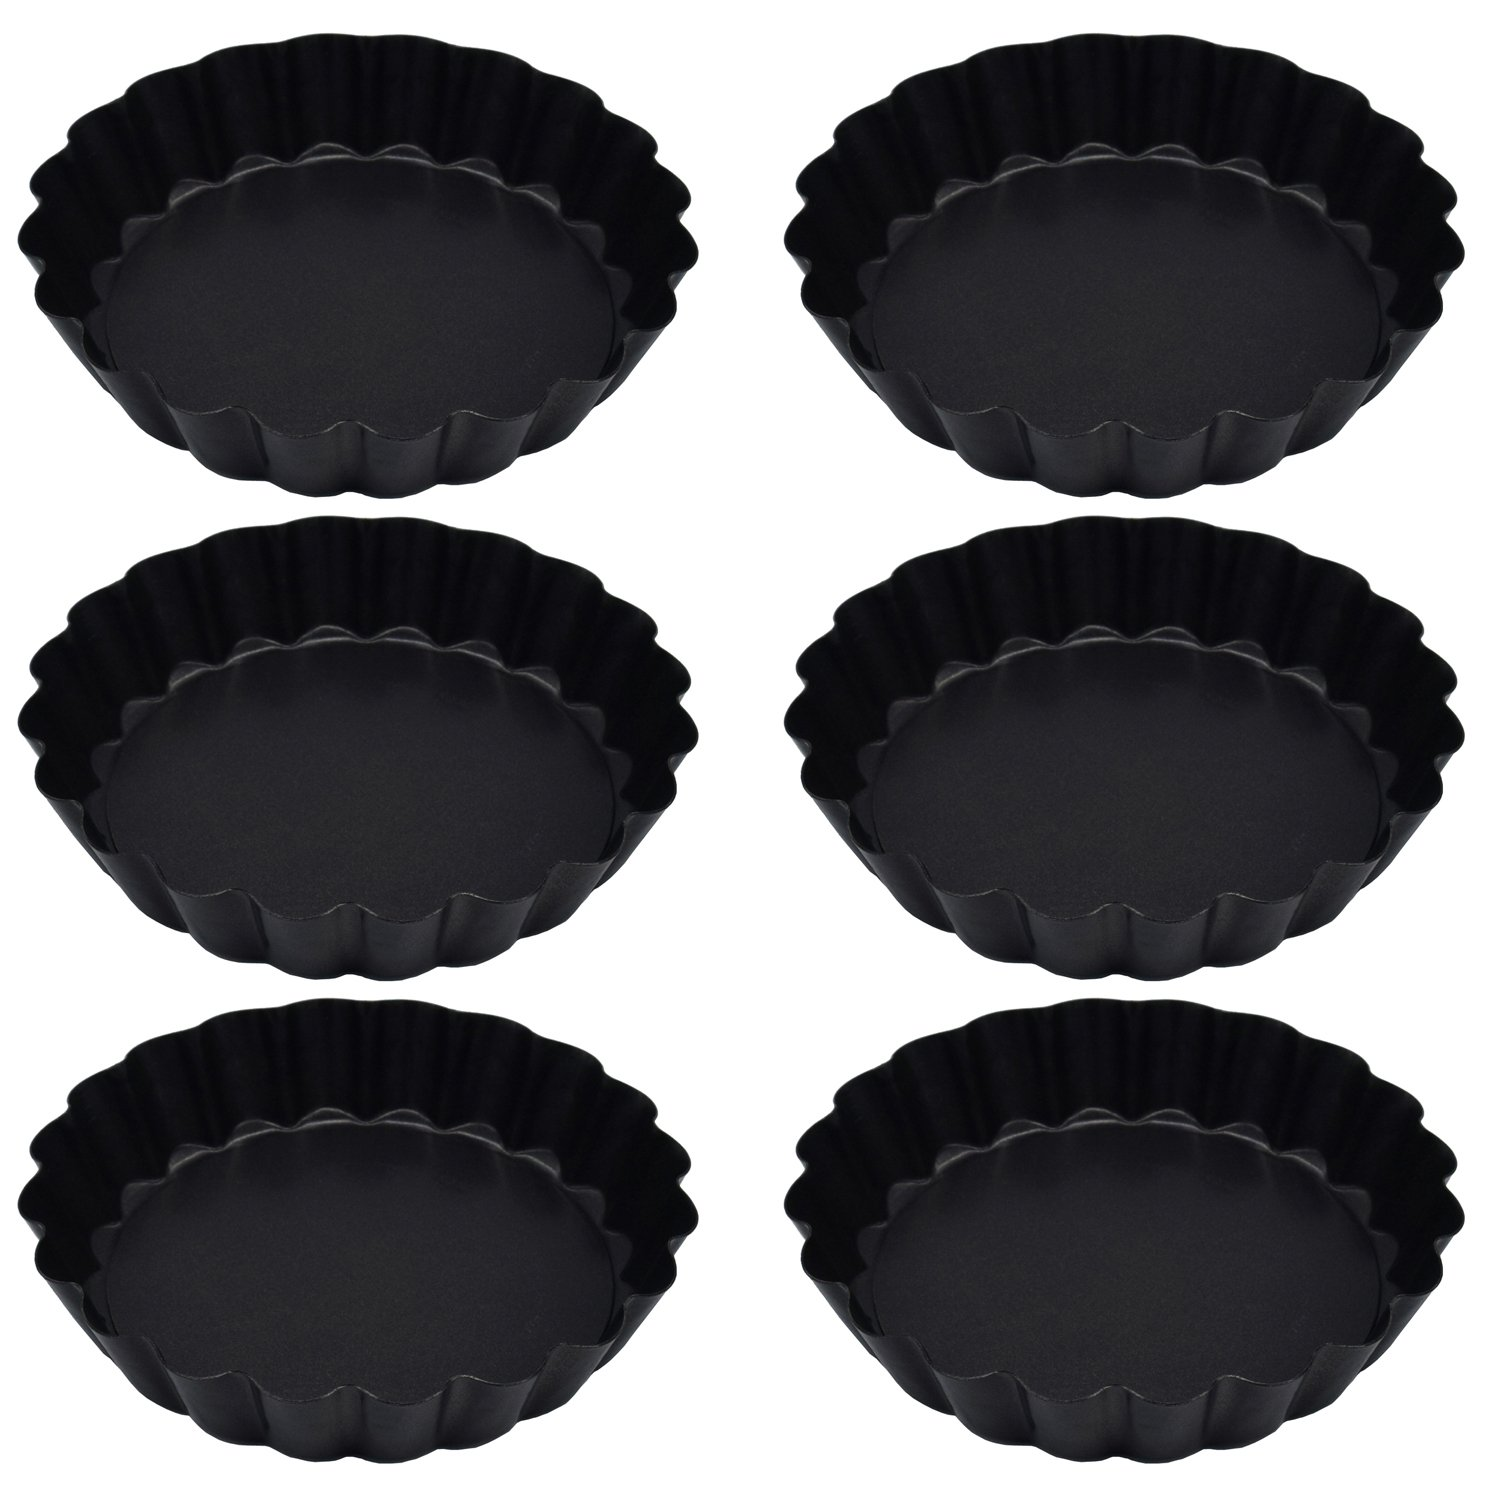 Richohome 4 Inch Quiche Pans Non Stick Removable Loose Bottom Mini Tart Pans, Pie Pan-Pack of 6 by Richohome